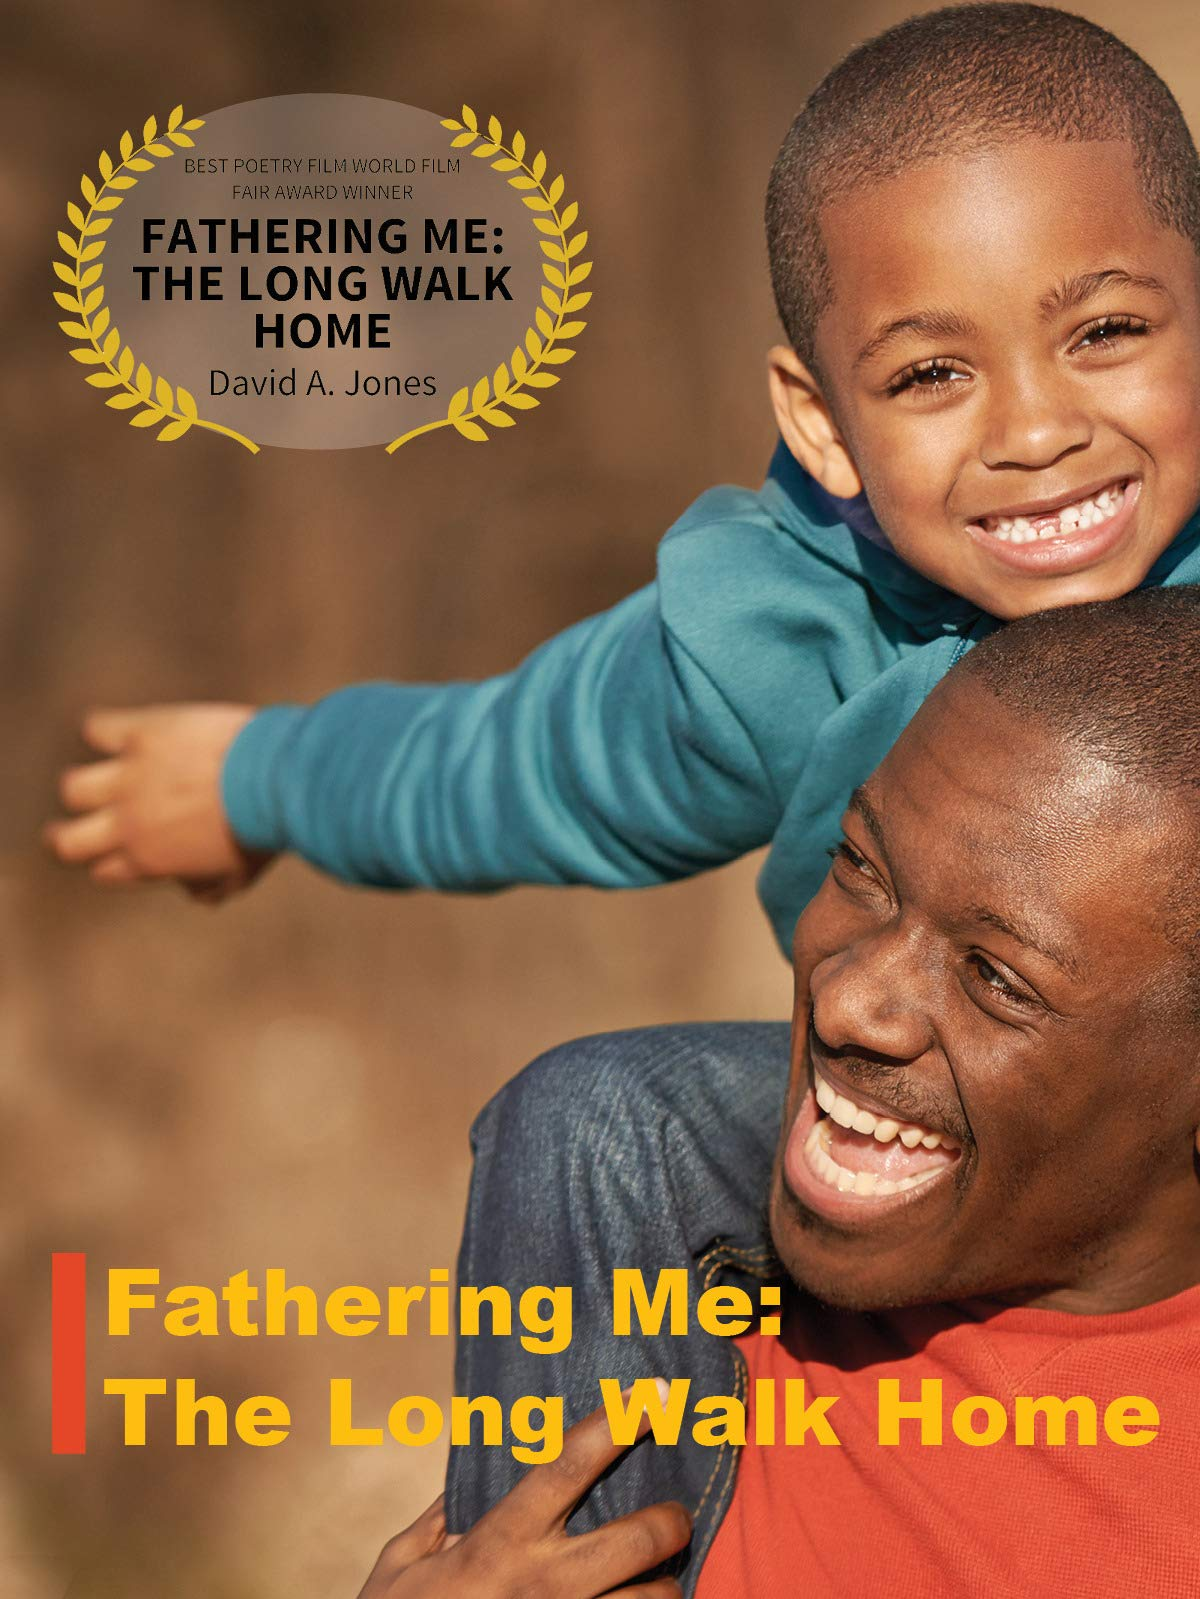 Fathering Me: The Long Walk Home